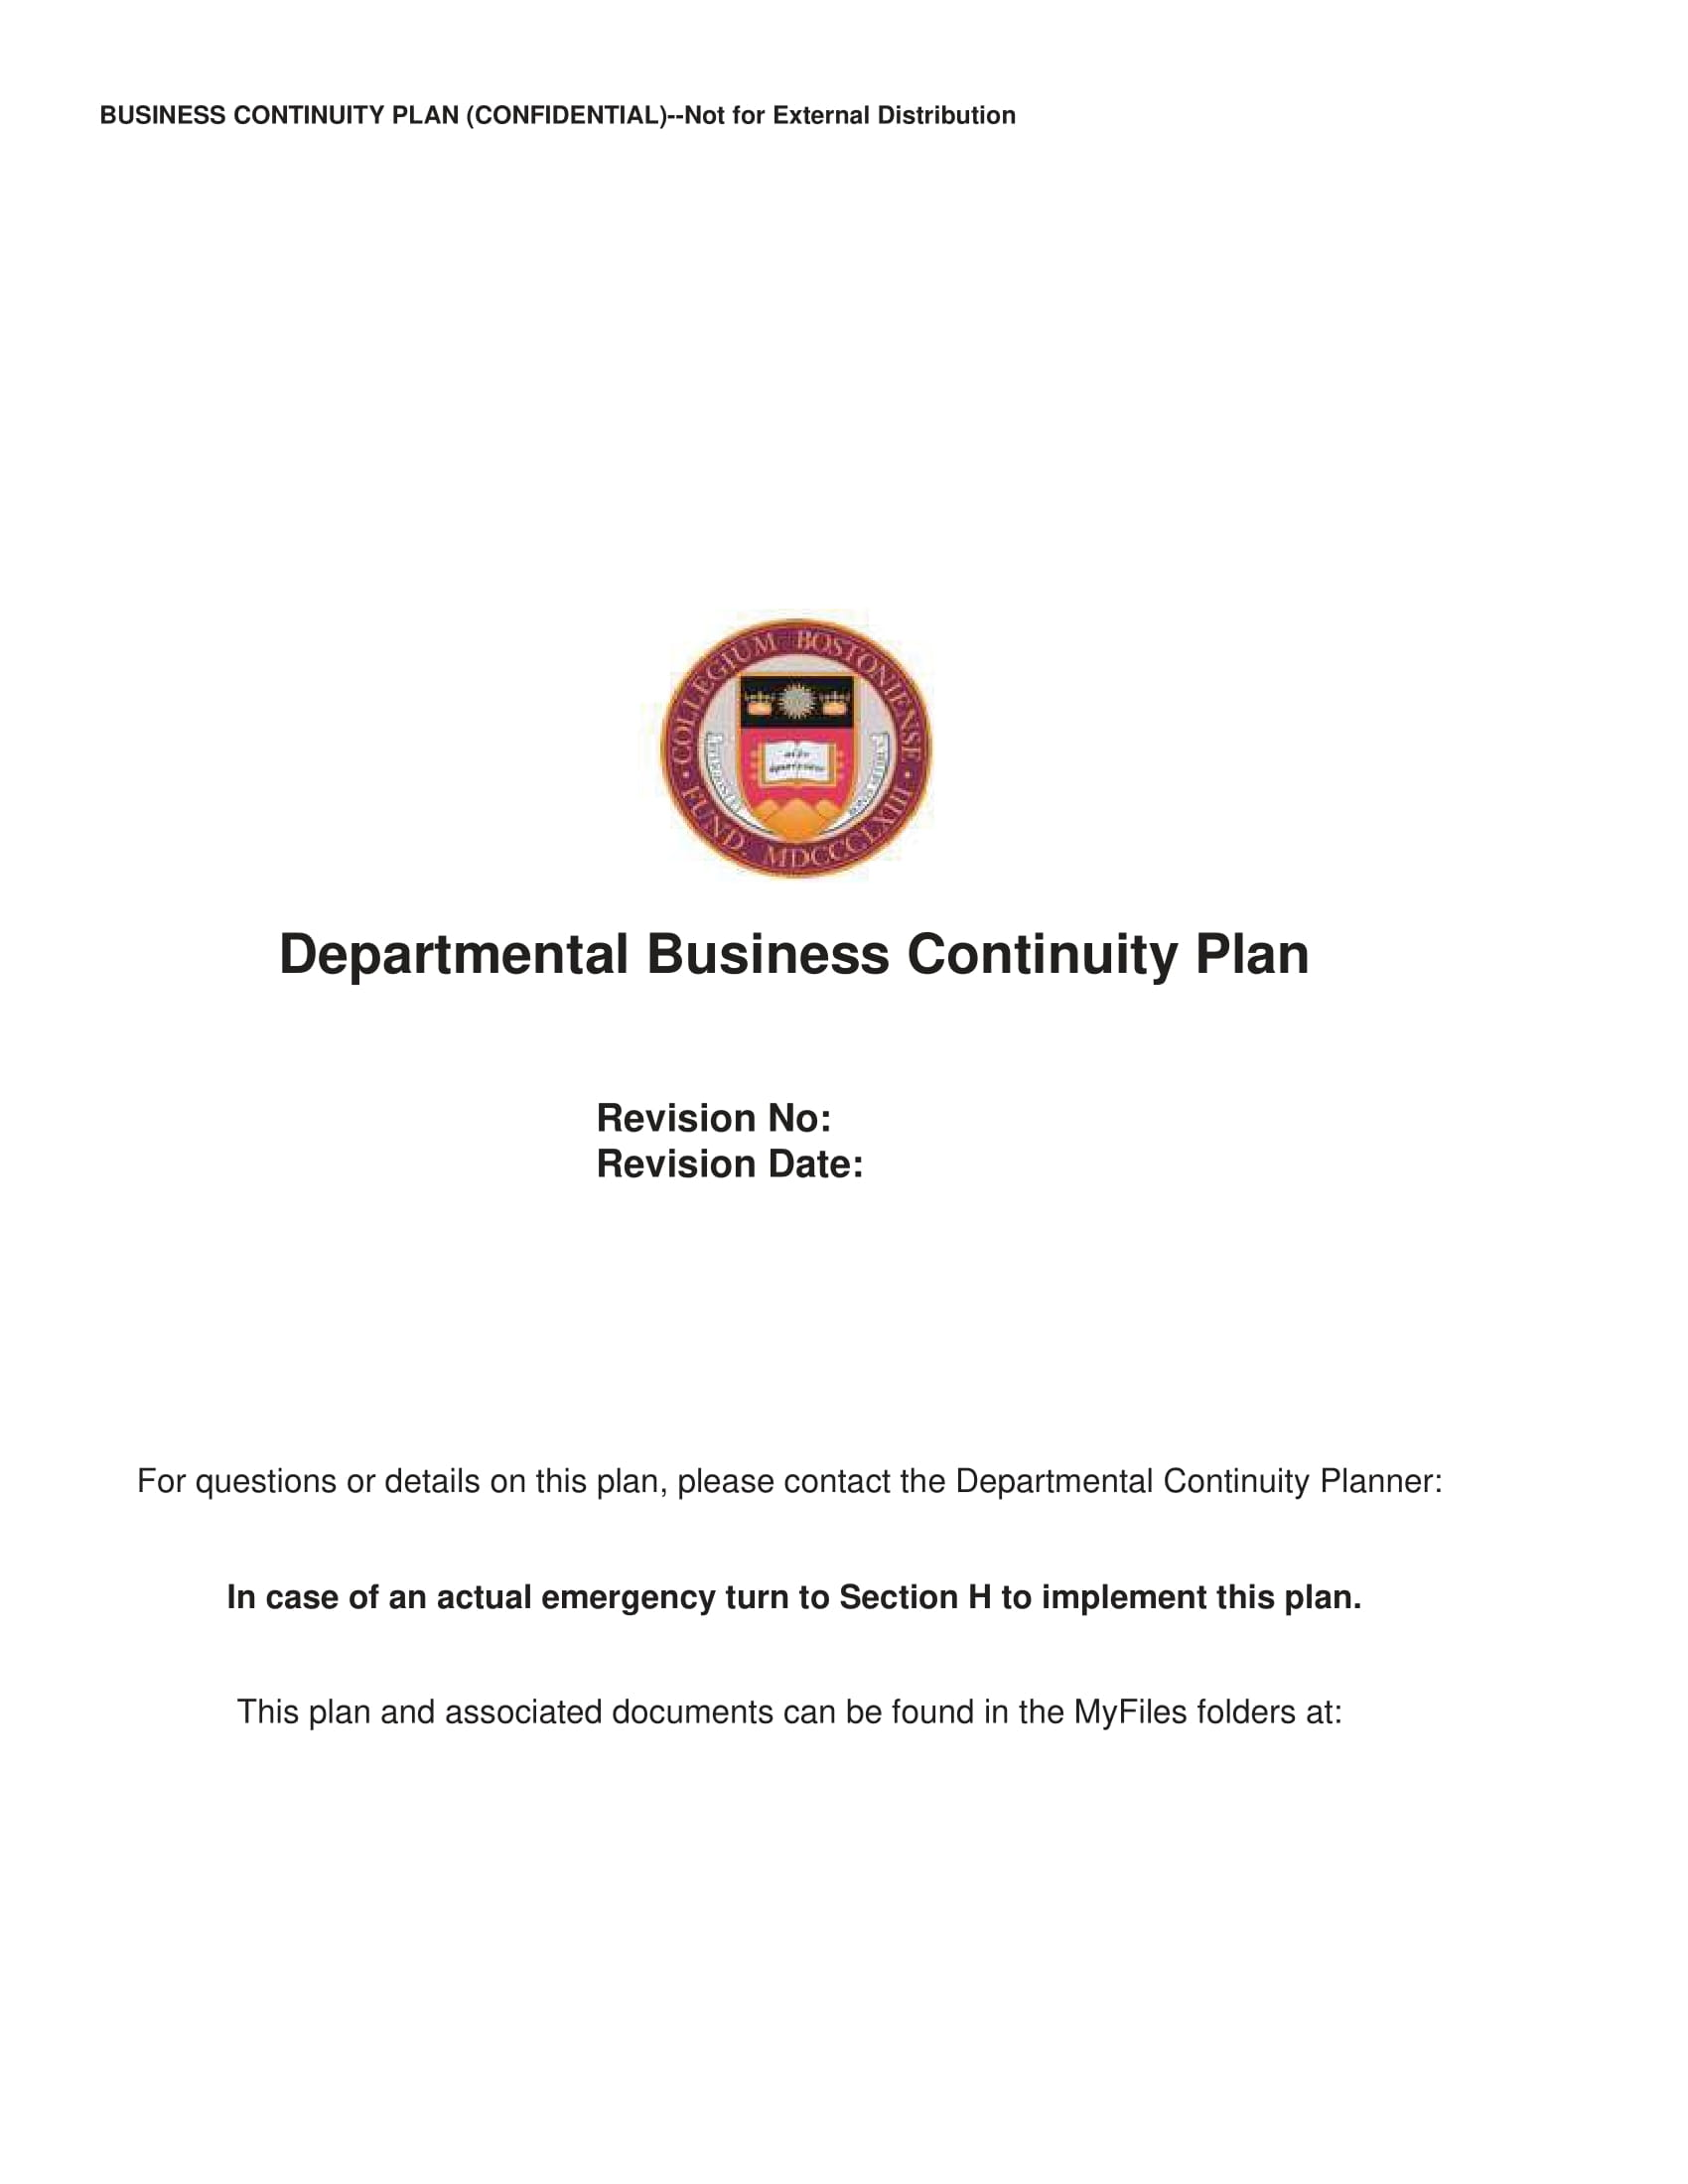 departmental business continuity plan example 01